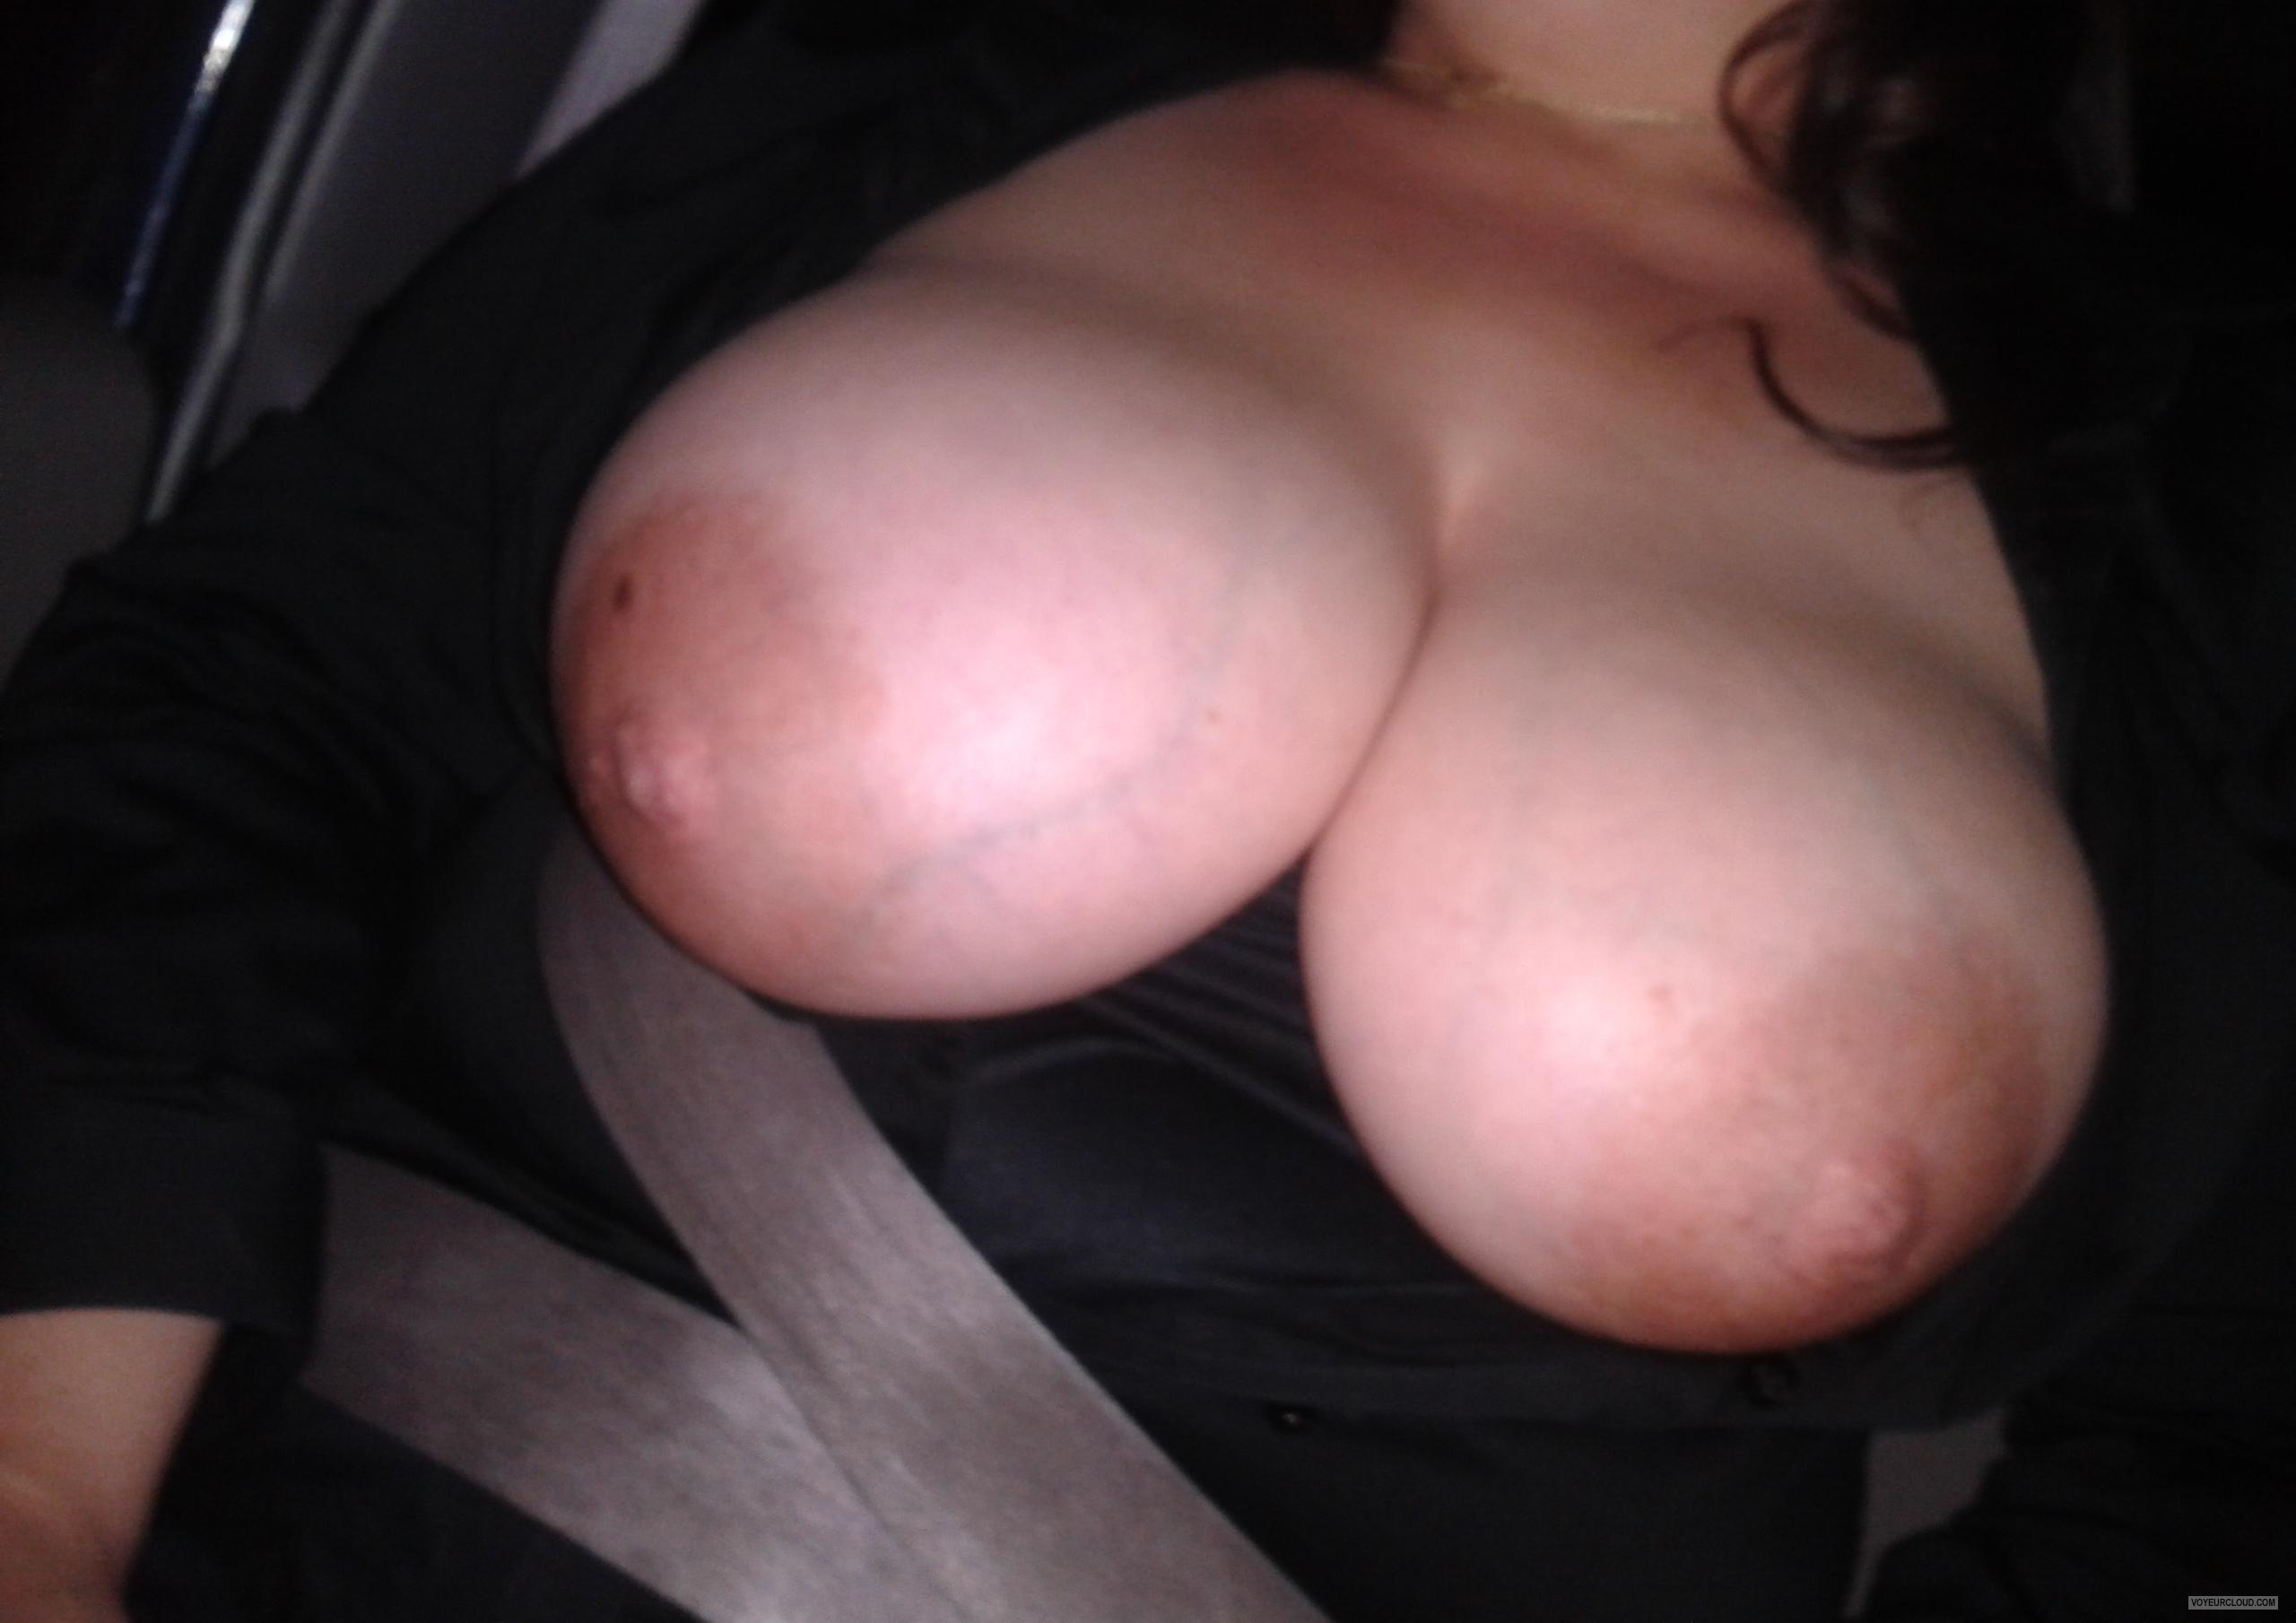 Tit Flash: Wife's Big Tits - Mmmounds from United States